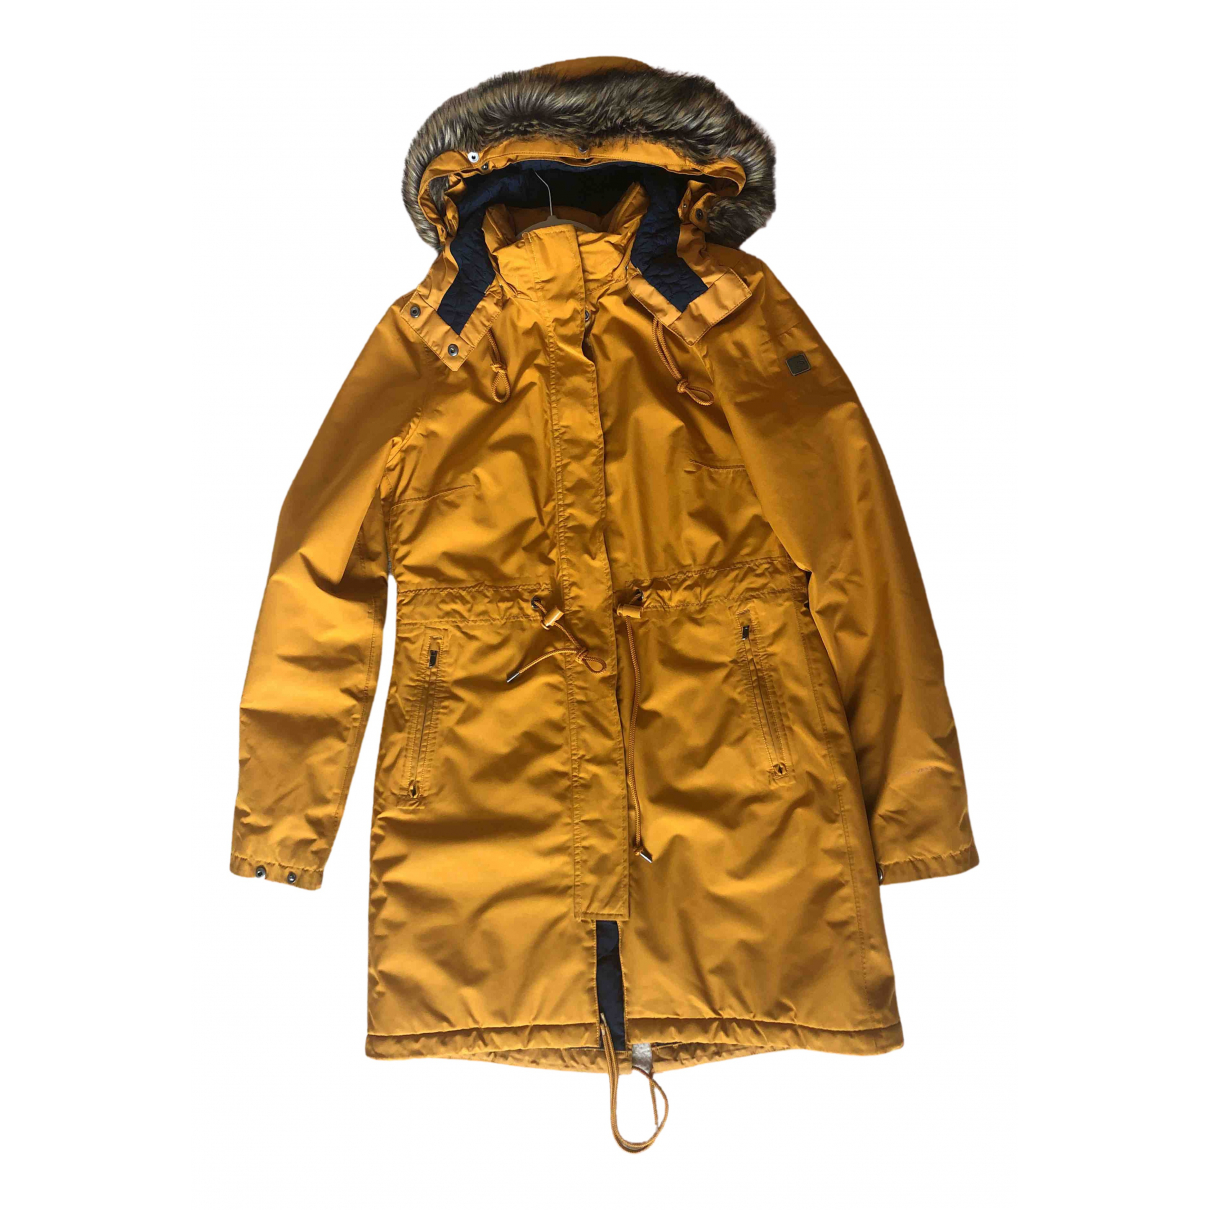 The North Face \N Yellow coat for Women M International